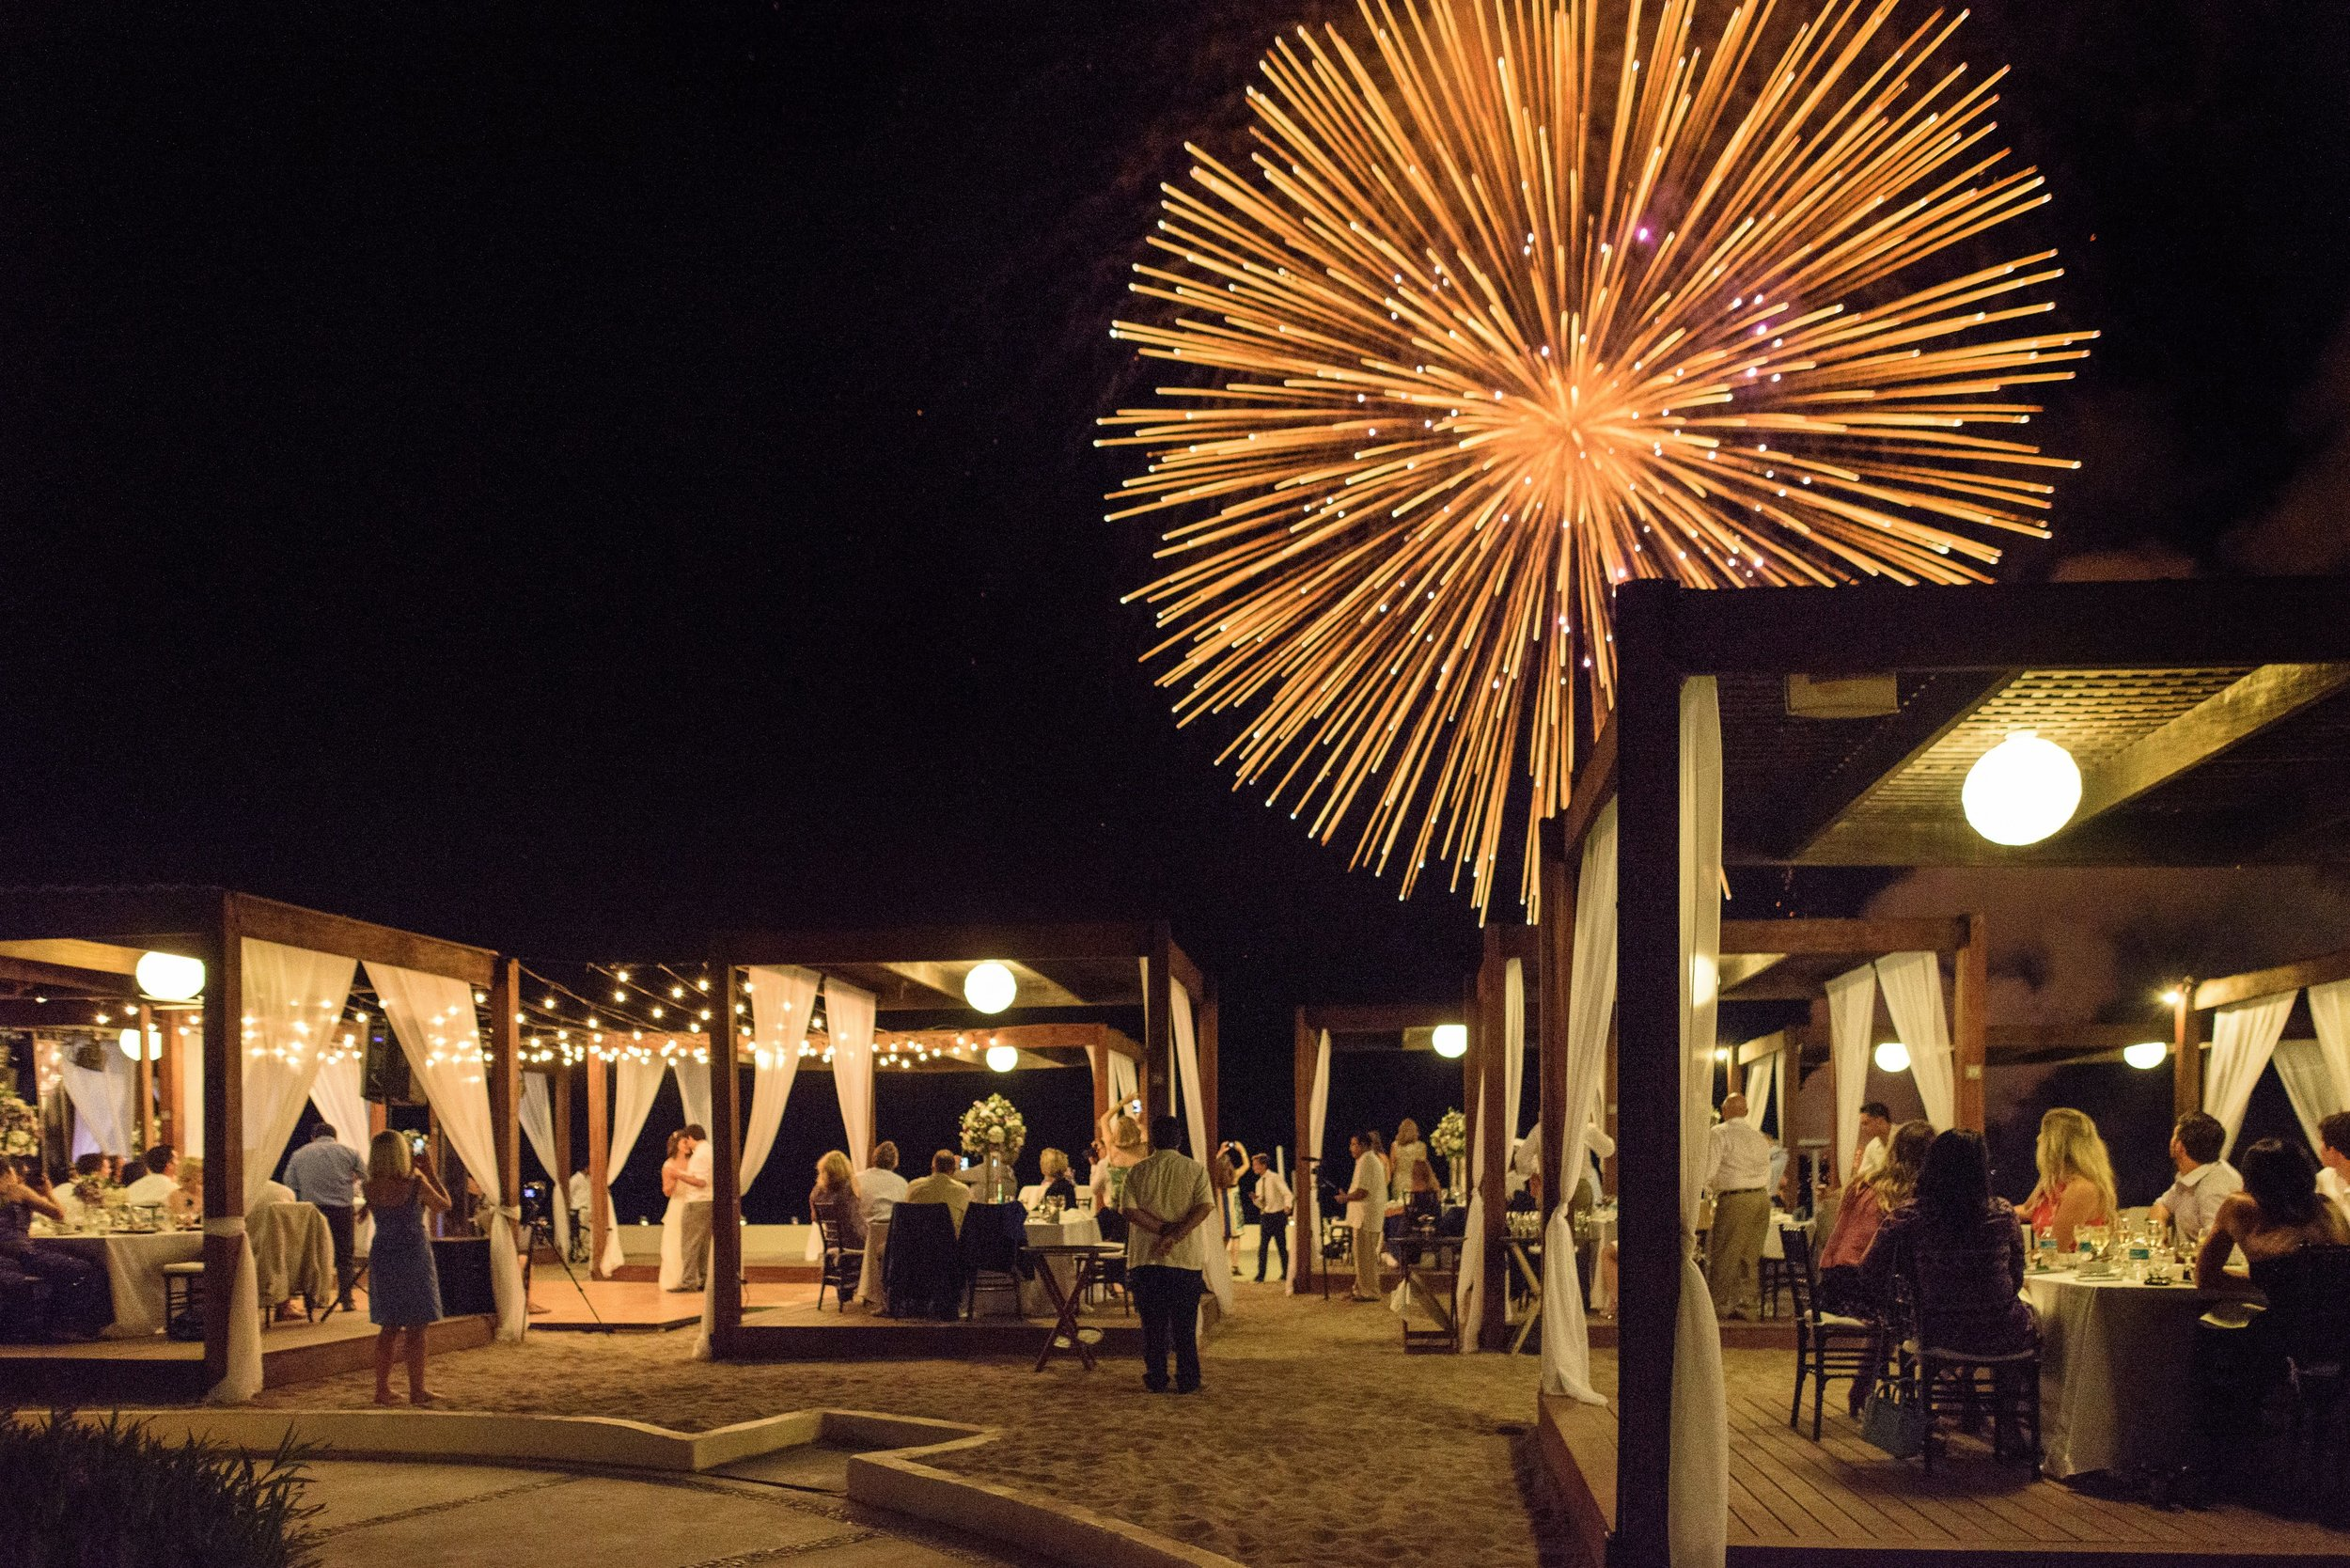 Mexican Destination Beach Wedding with Fireworks